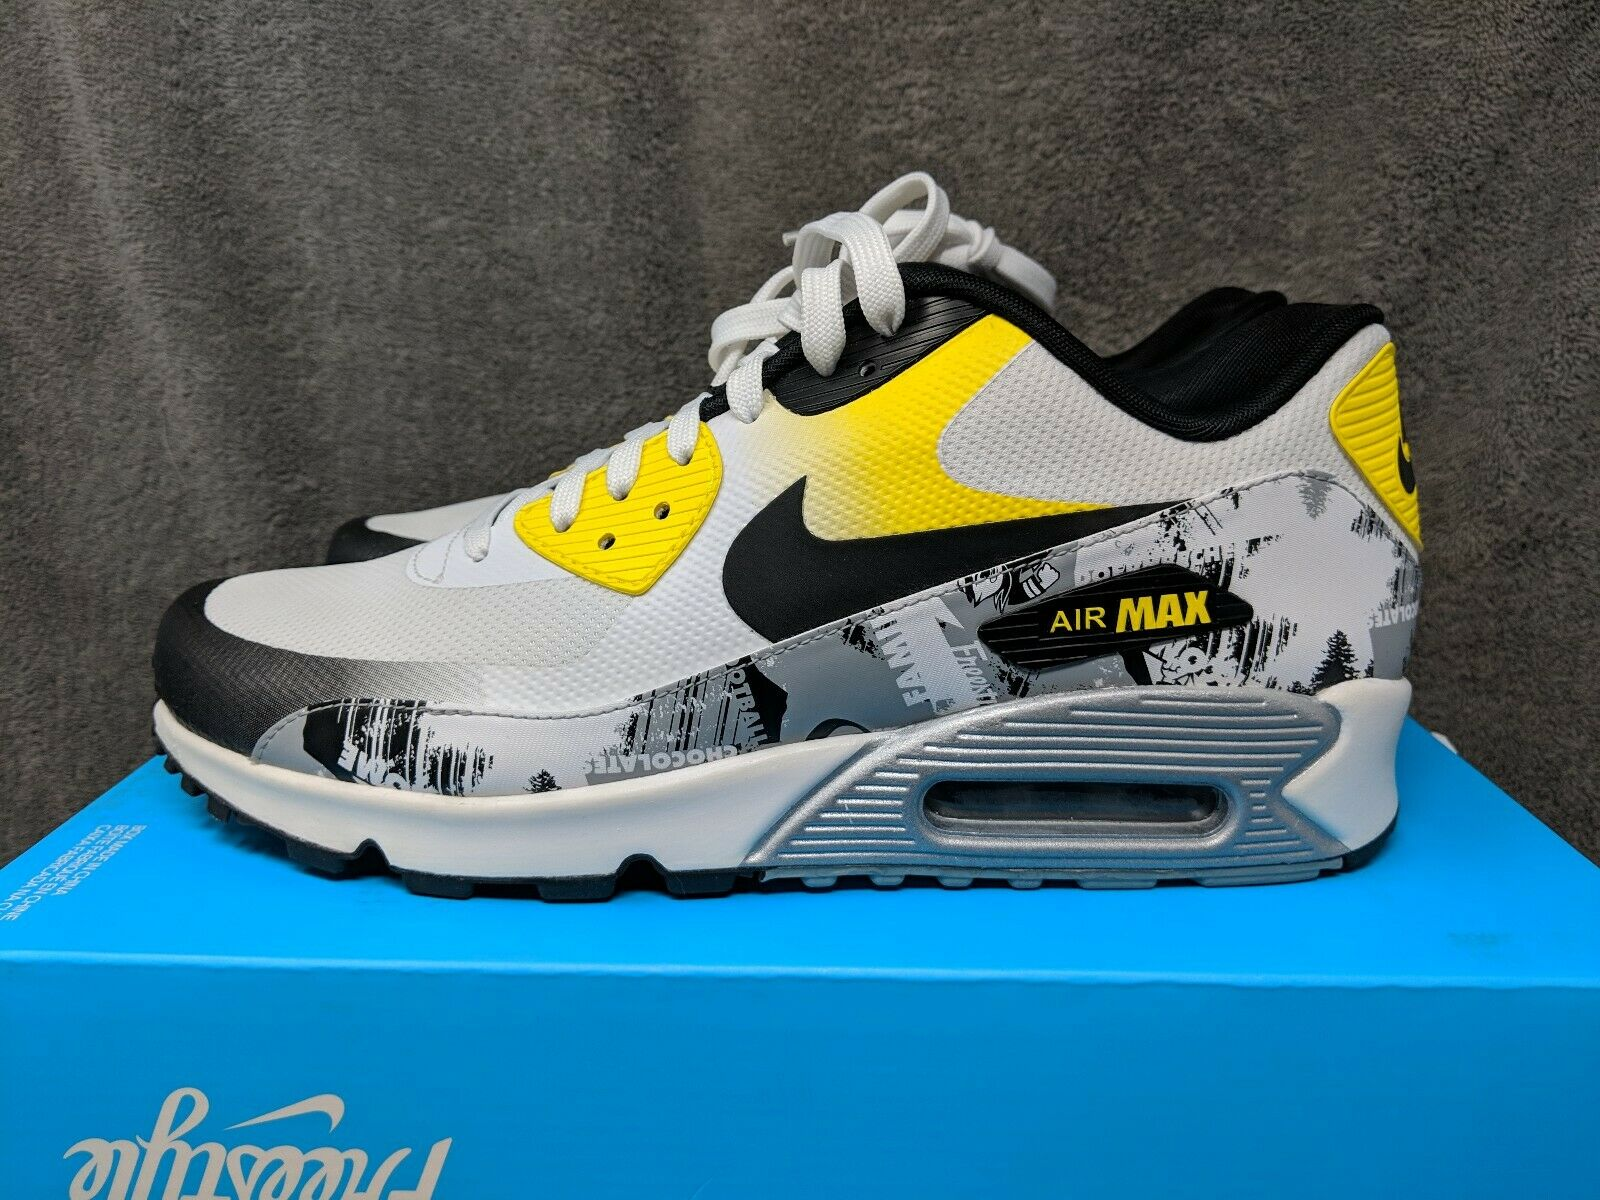 Nike Air Max 90 Premium DB (AH6830-100) White Black Brand New Mens Size 8.5